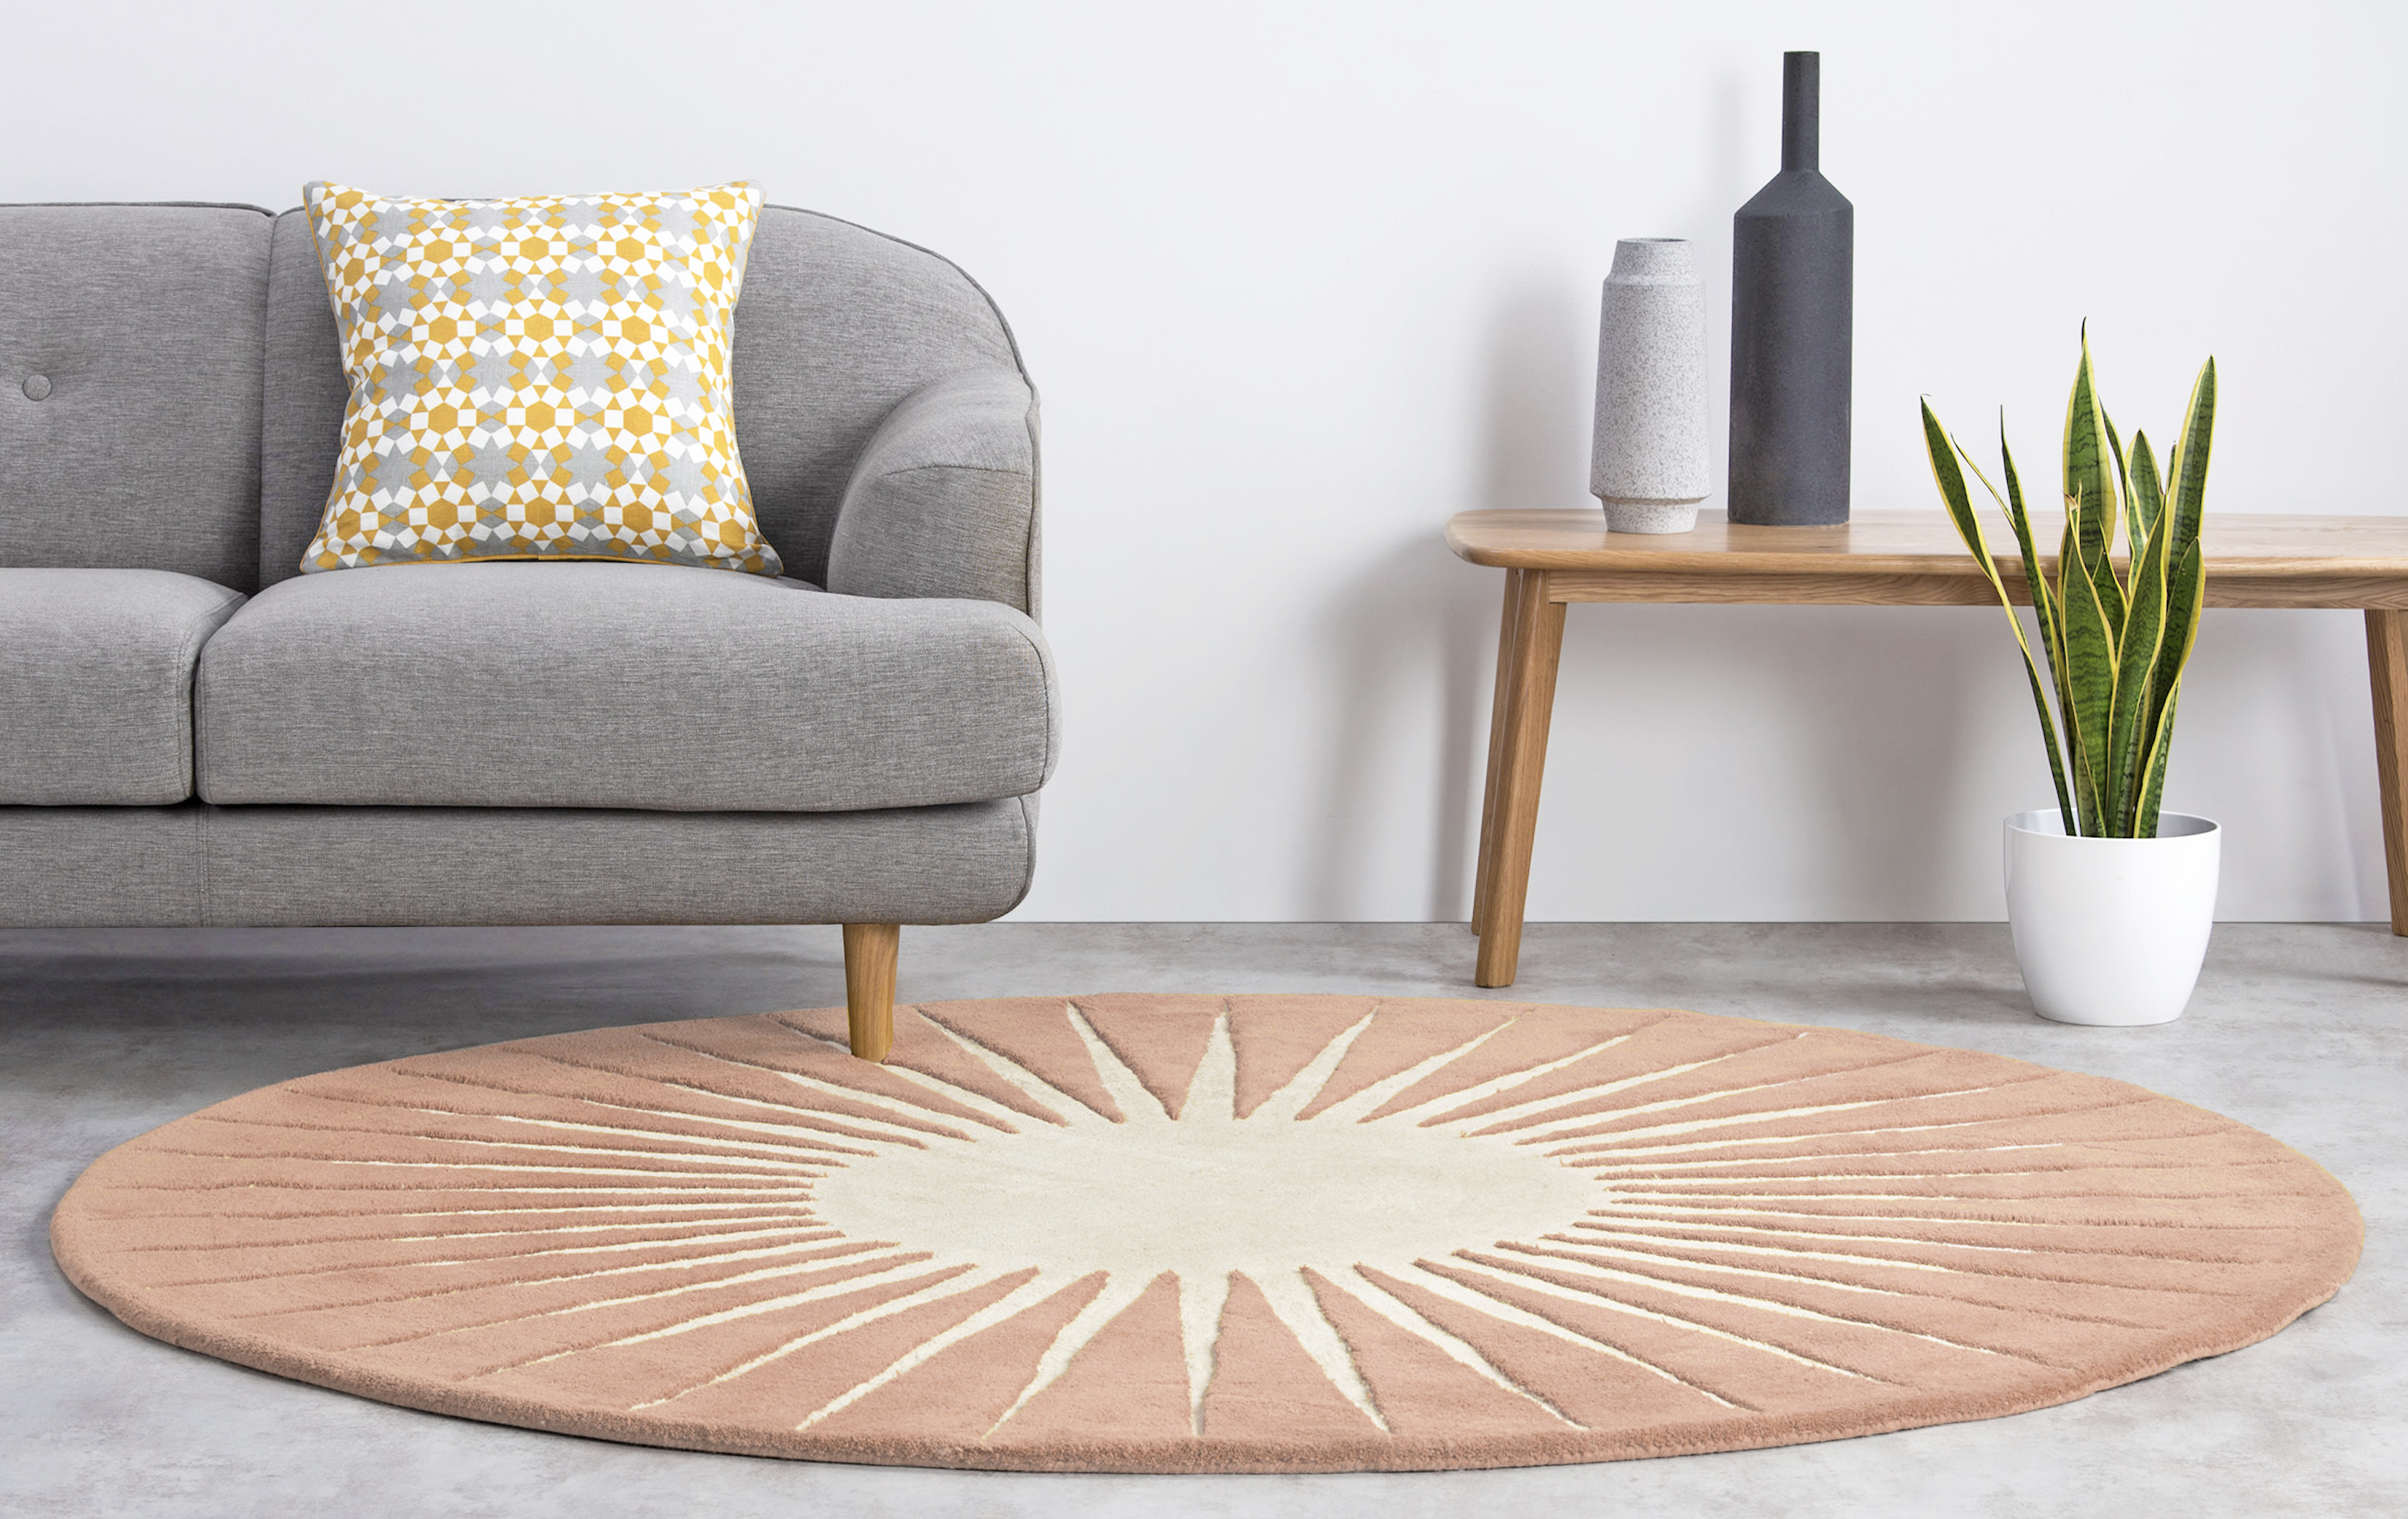 Vaserely NZ wool rug, 200 cm dia, loop and high tufted pile, made.com